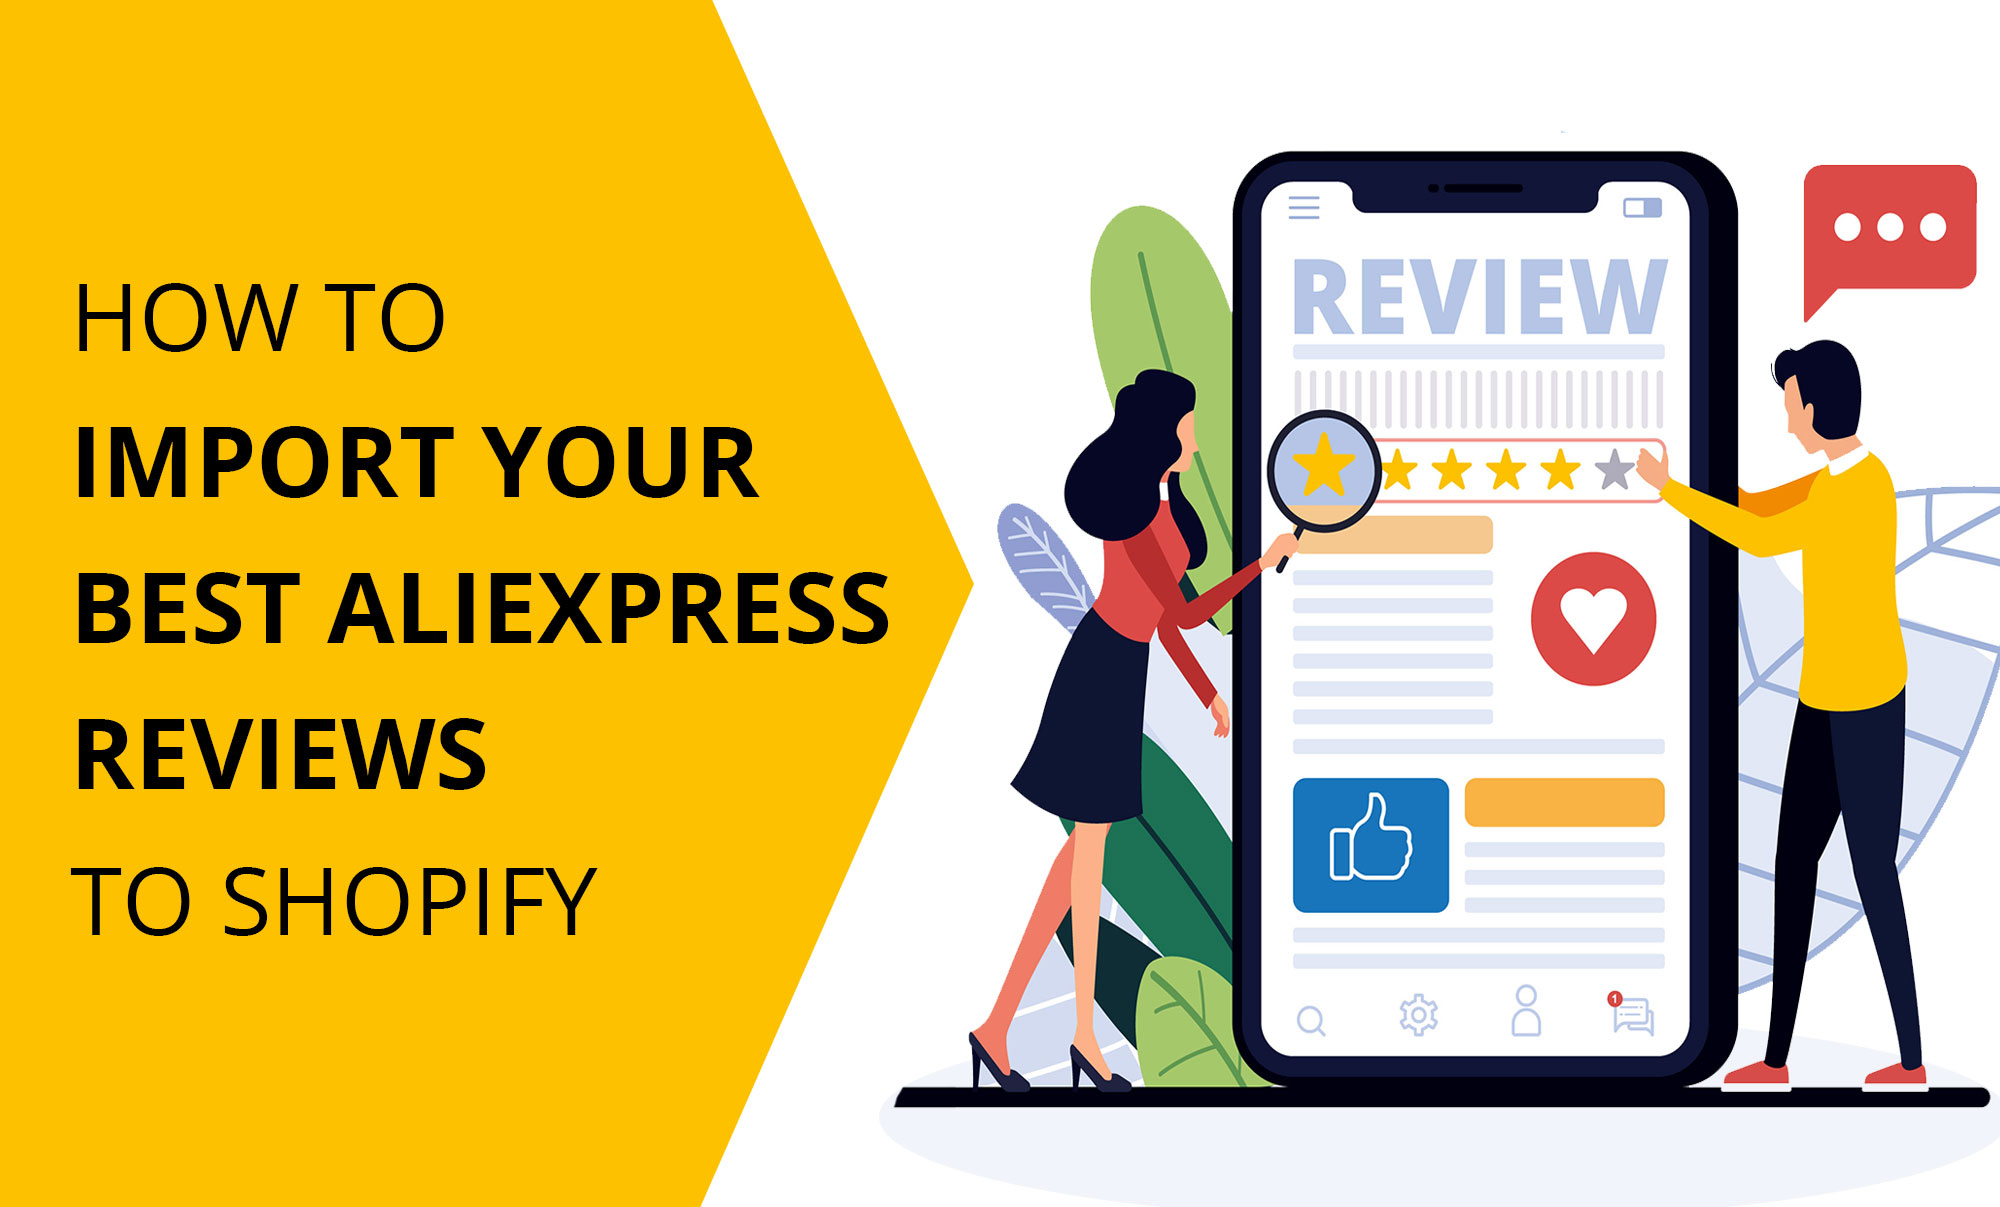 How can you import your best Amazon & Aliexpress reviews into your Shopify website